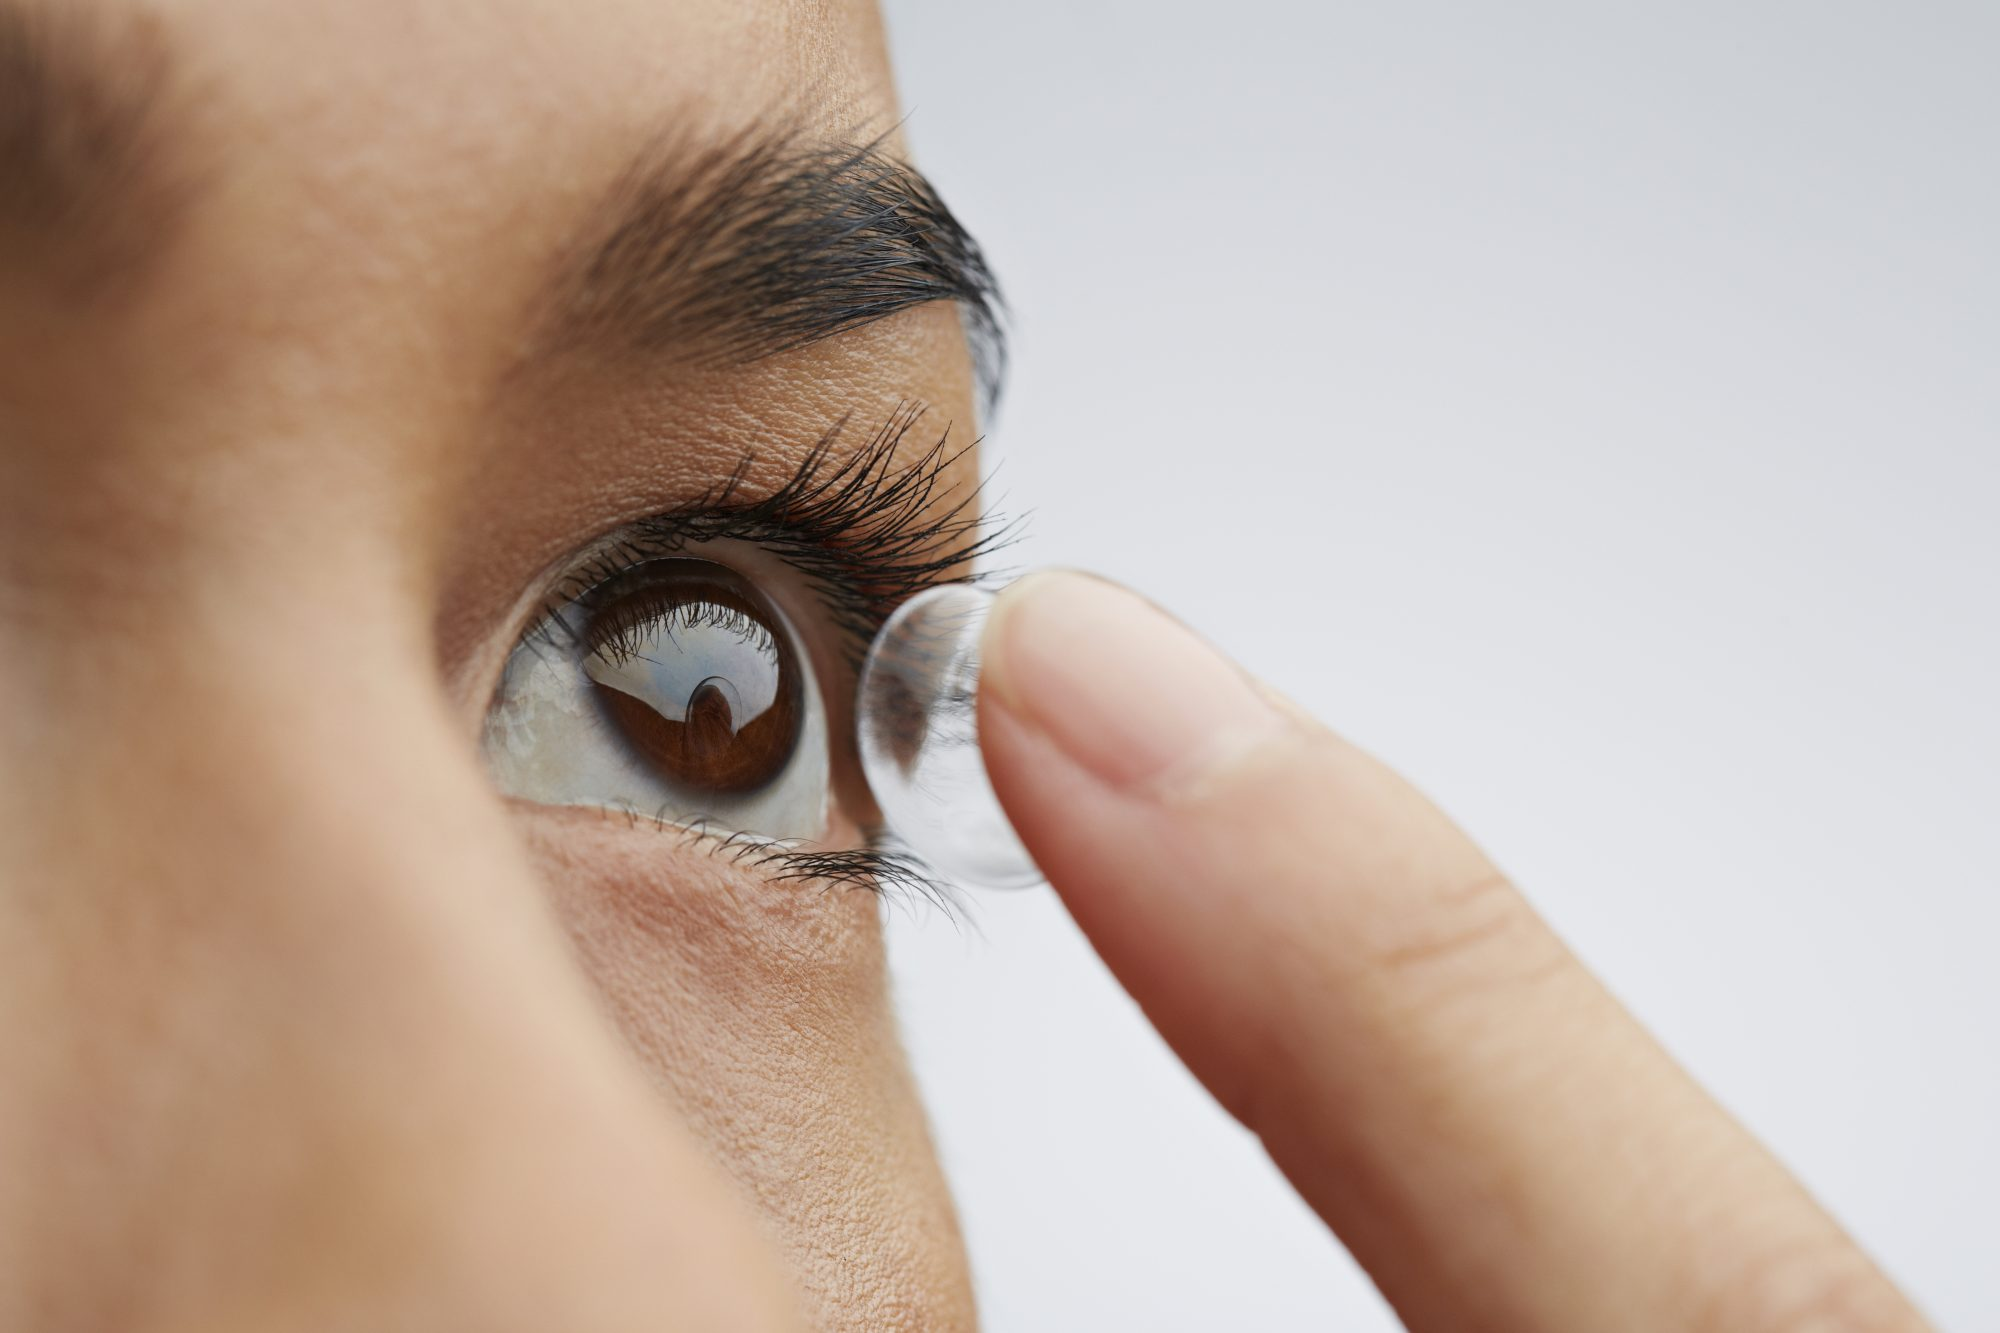 Why You Should Never Lick Your Contacts and Put Them Back in Your Eyes